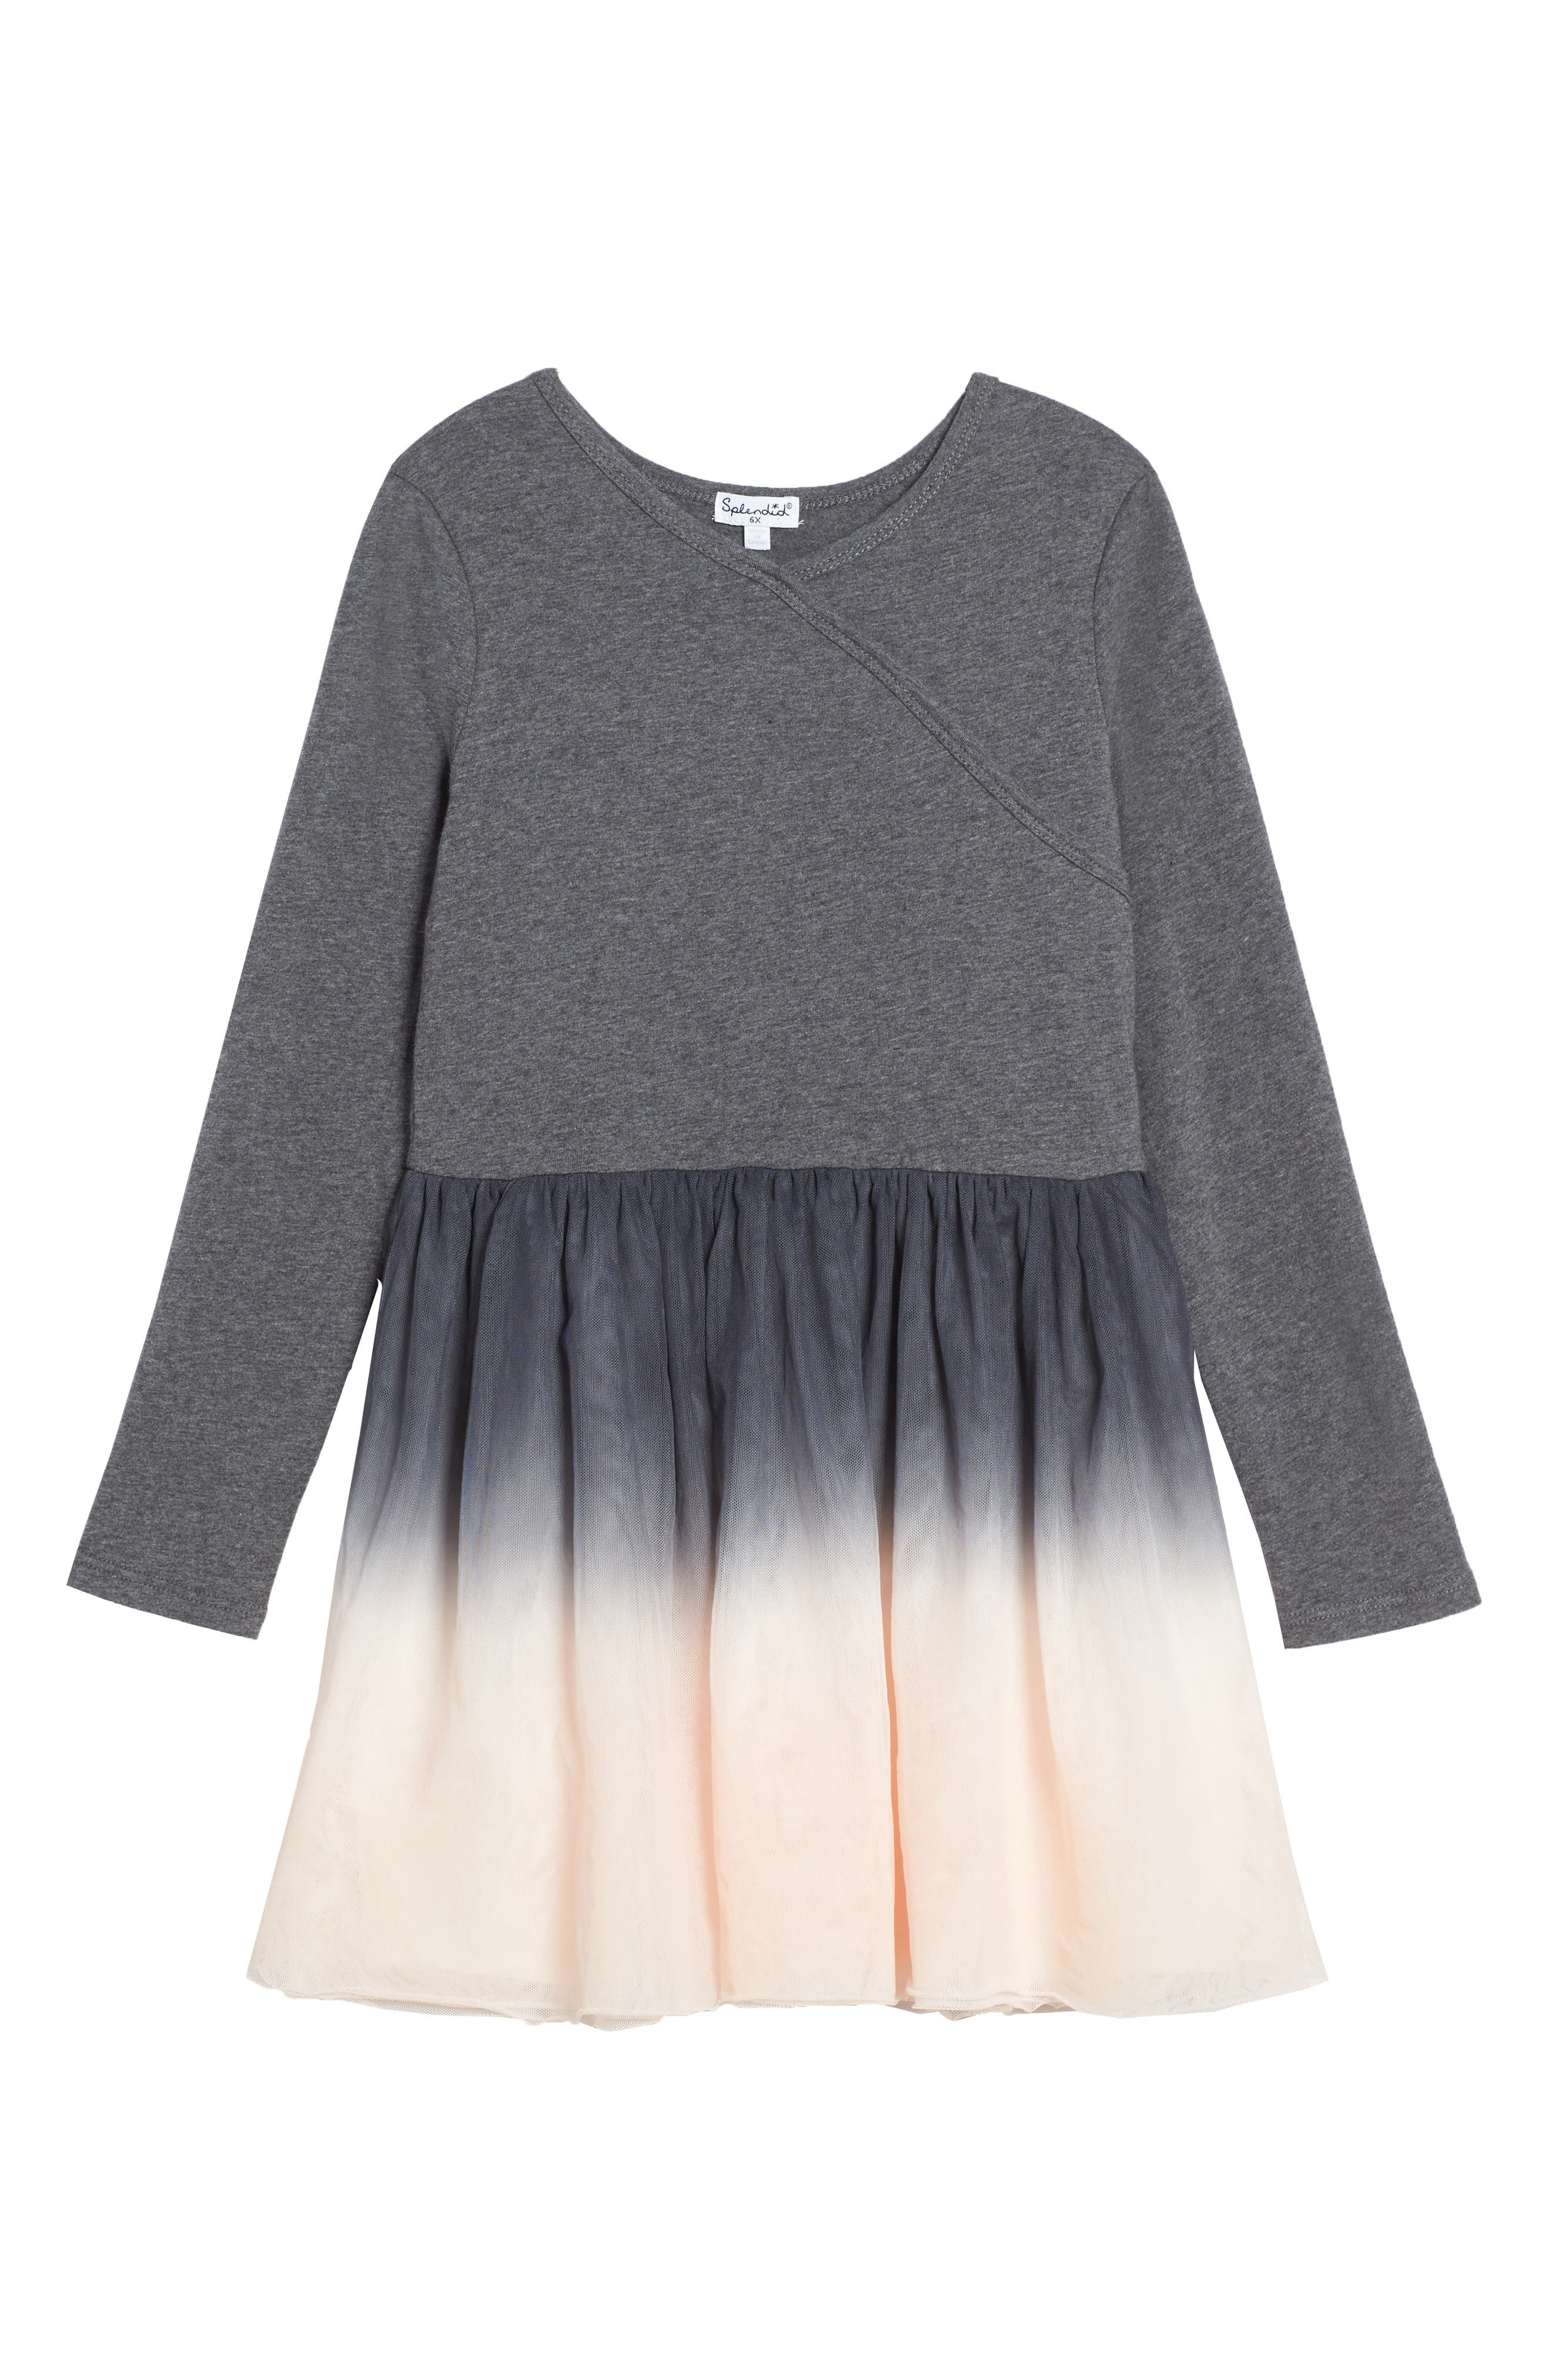 Splendid Dip Dye Tulle Dress (Toddler Girls & Little Girls)